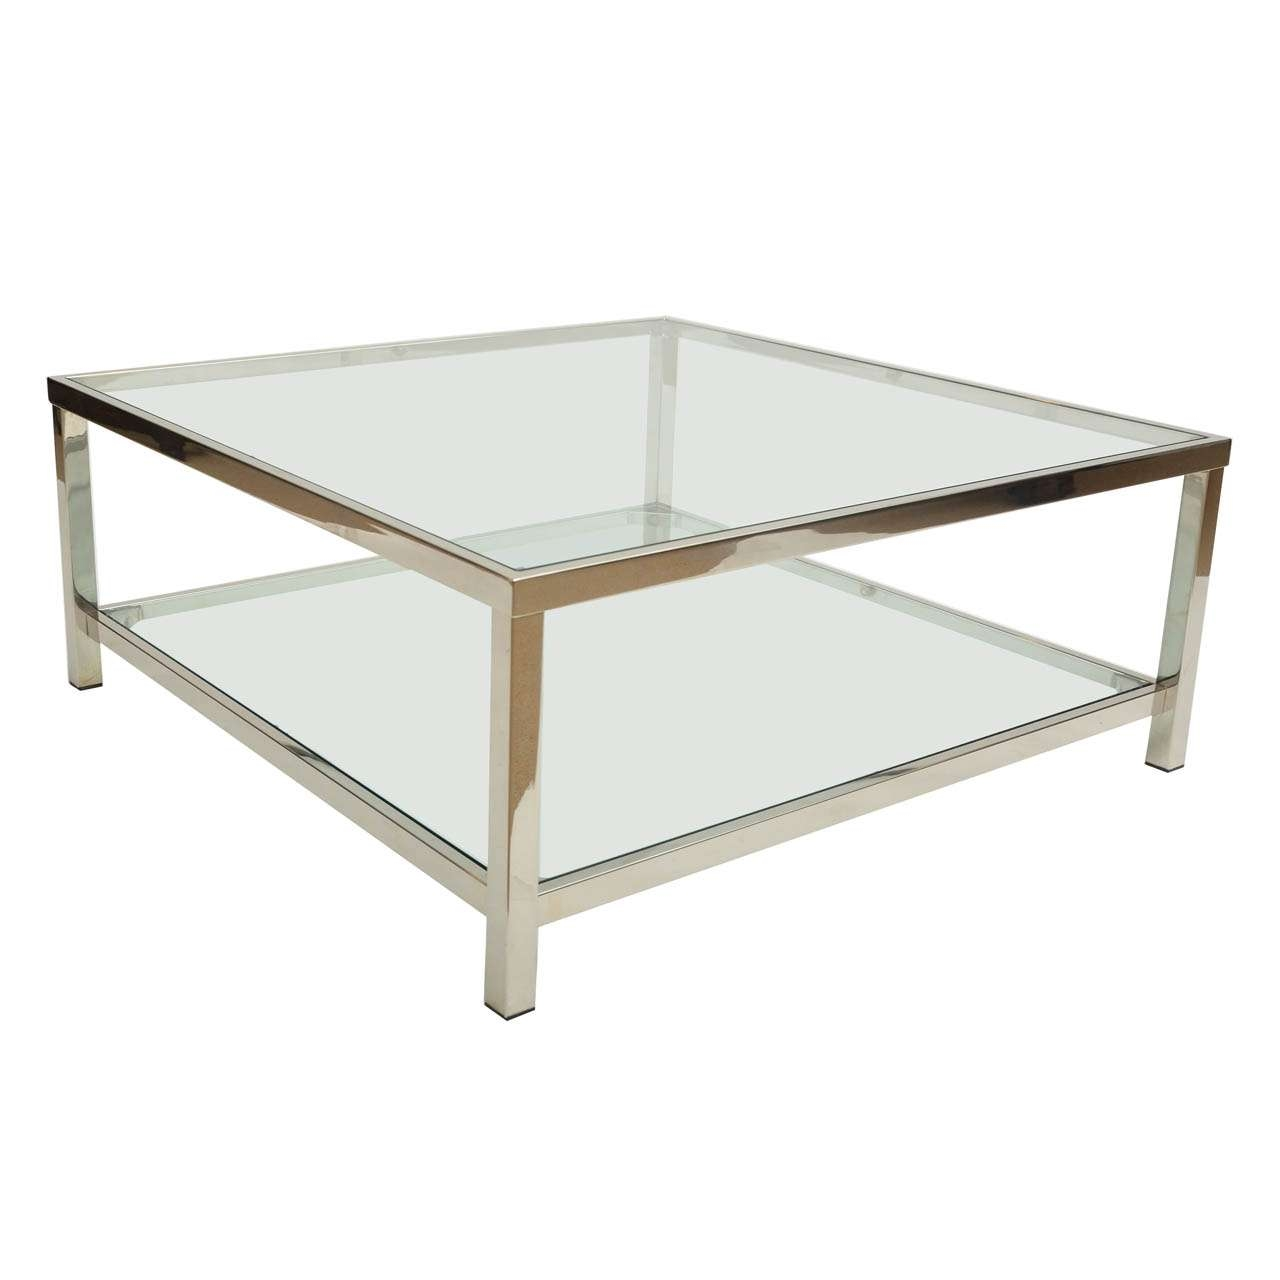 All You Need To Know About Glass And Chrome Coffee Tables For Current Chrome And Glass Coffee Tables (View 9 of 20)